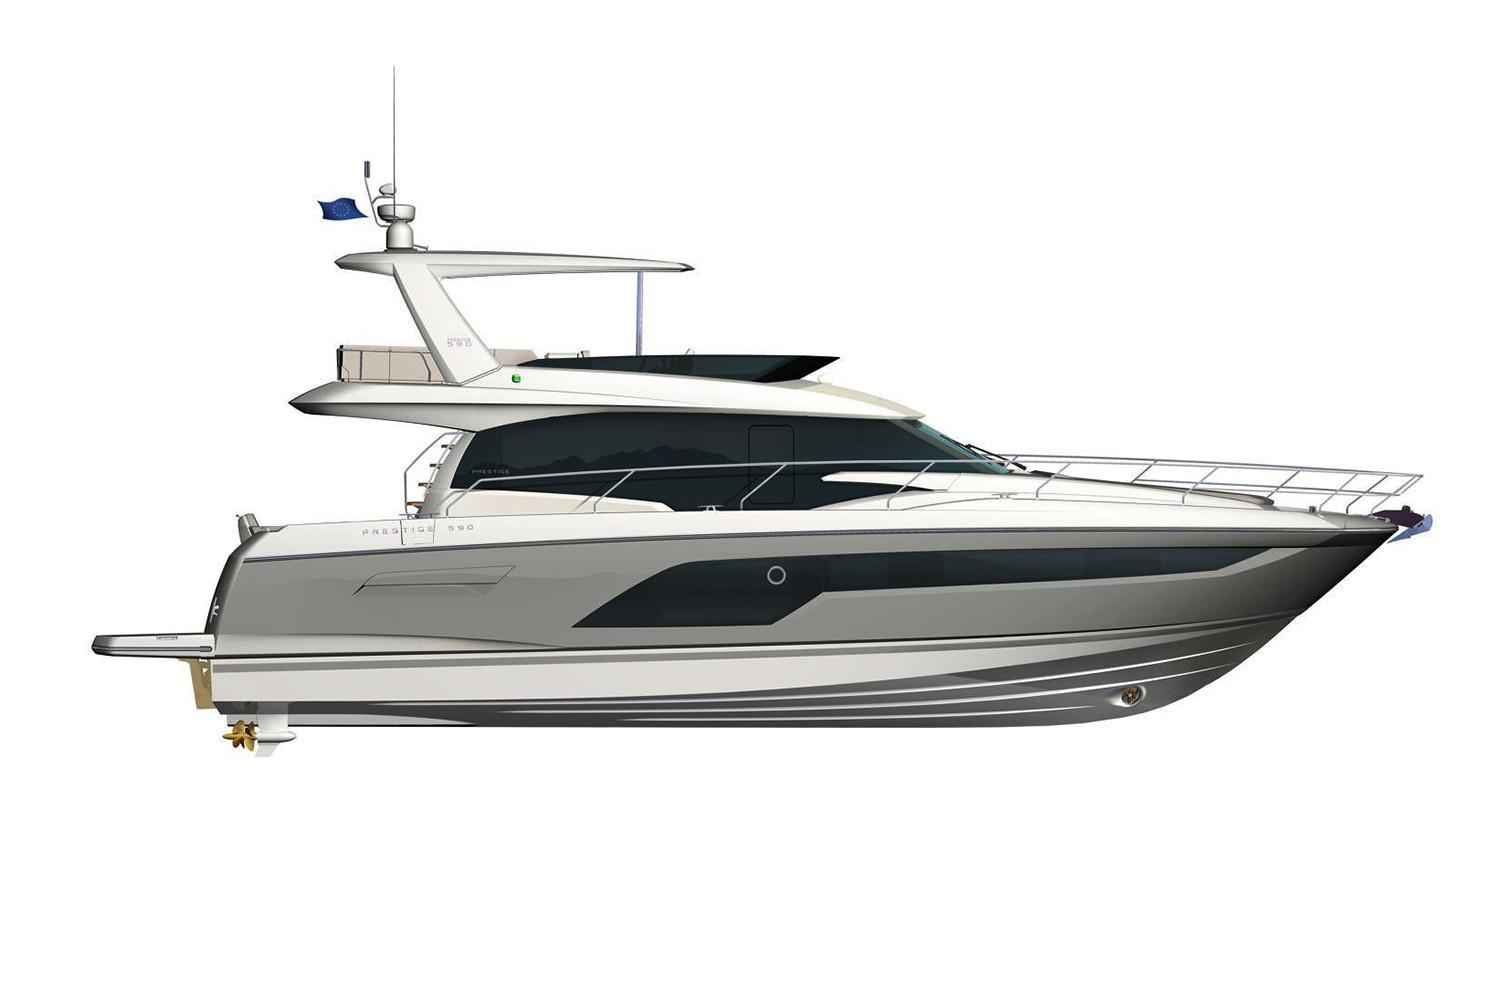 2021 Prestige 590 Fly #75566 inventory image at Sun Country Coastal in Newport Beach